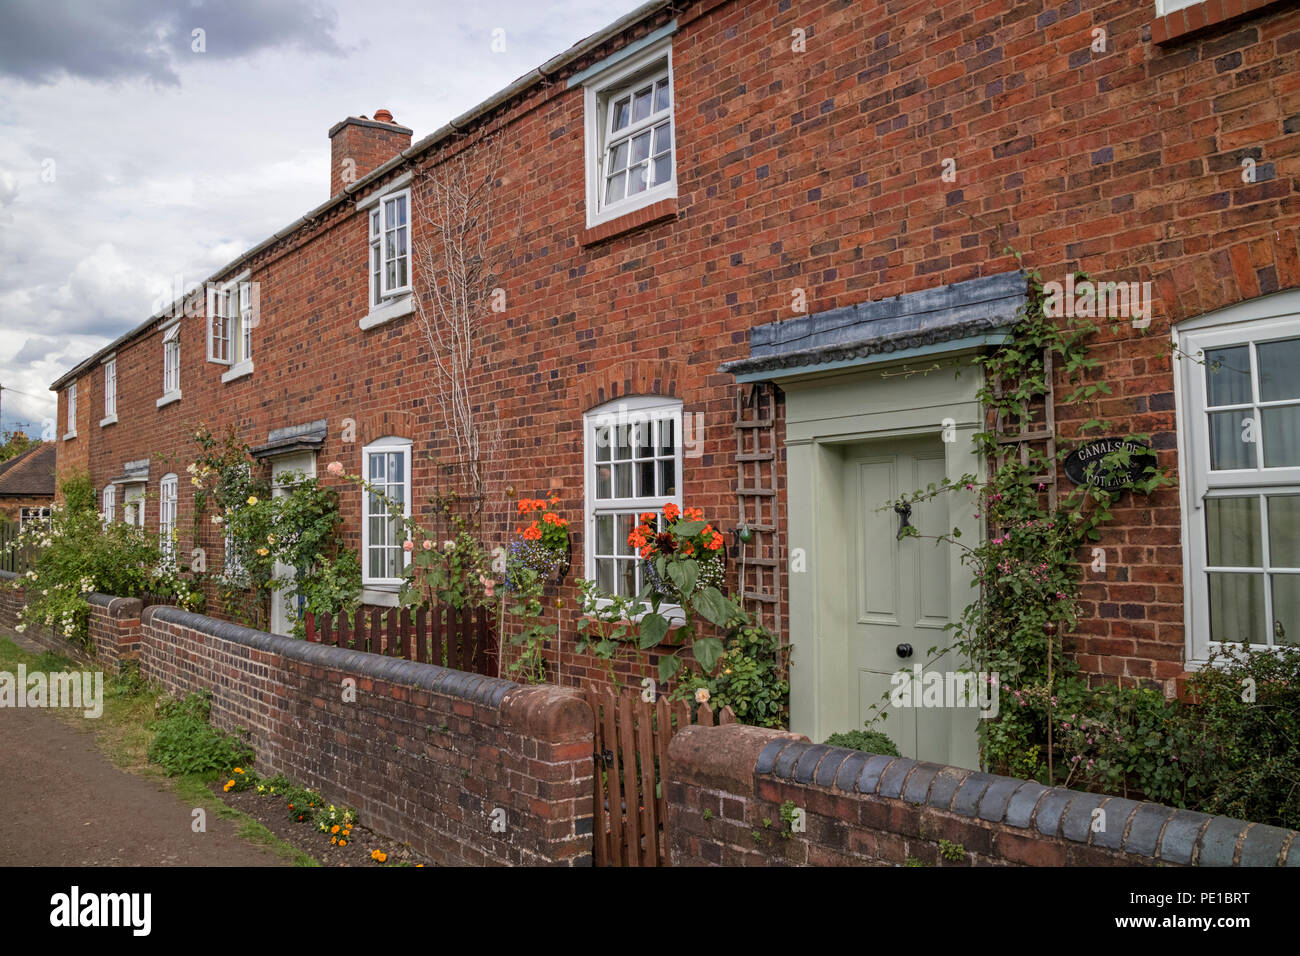 Waterside Cottage Stock Photos & Waterside Cottage Stock Images - Alamy